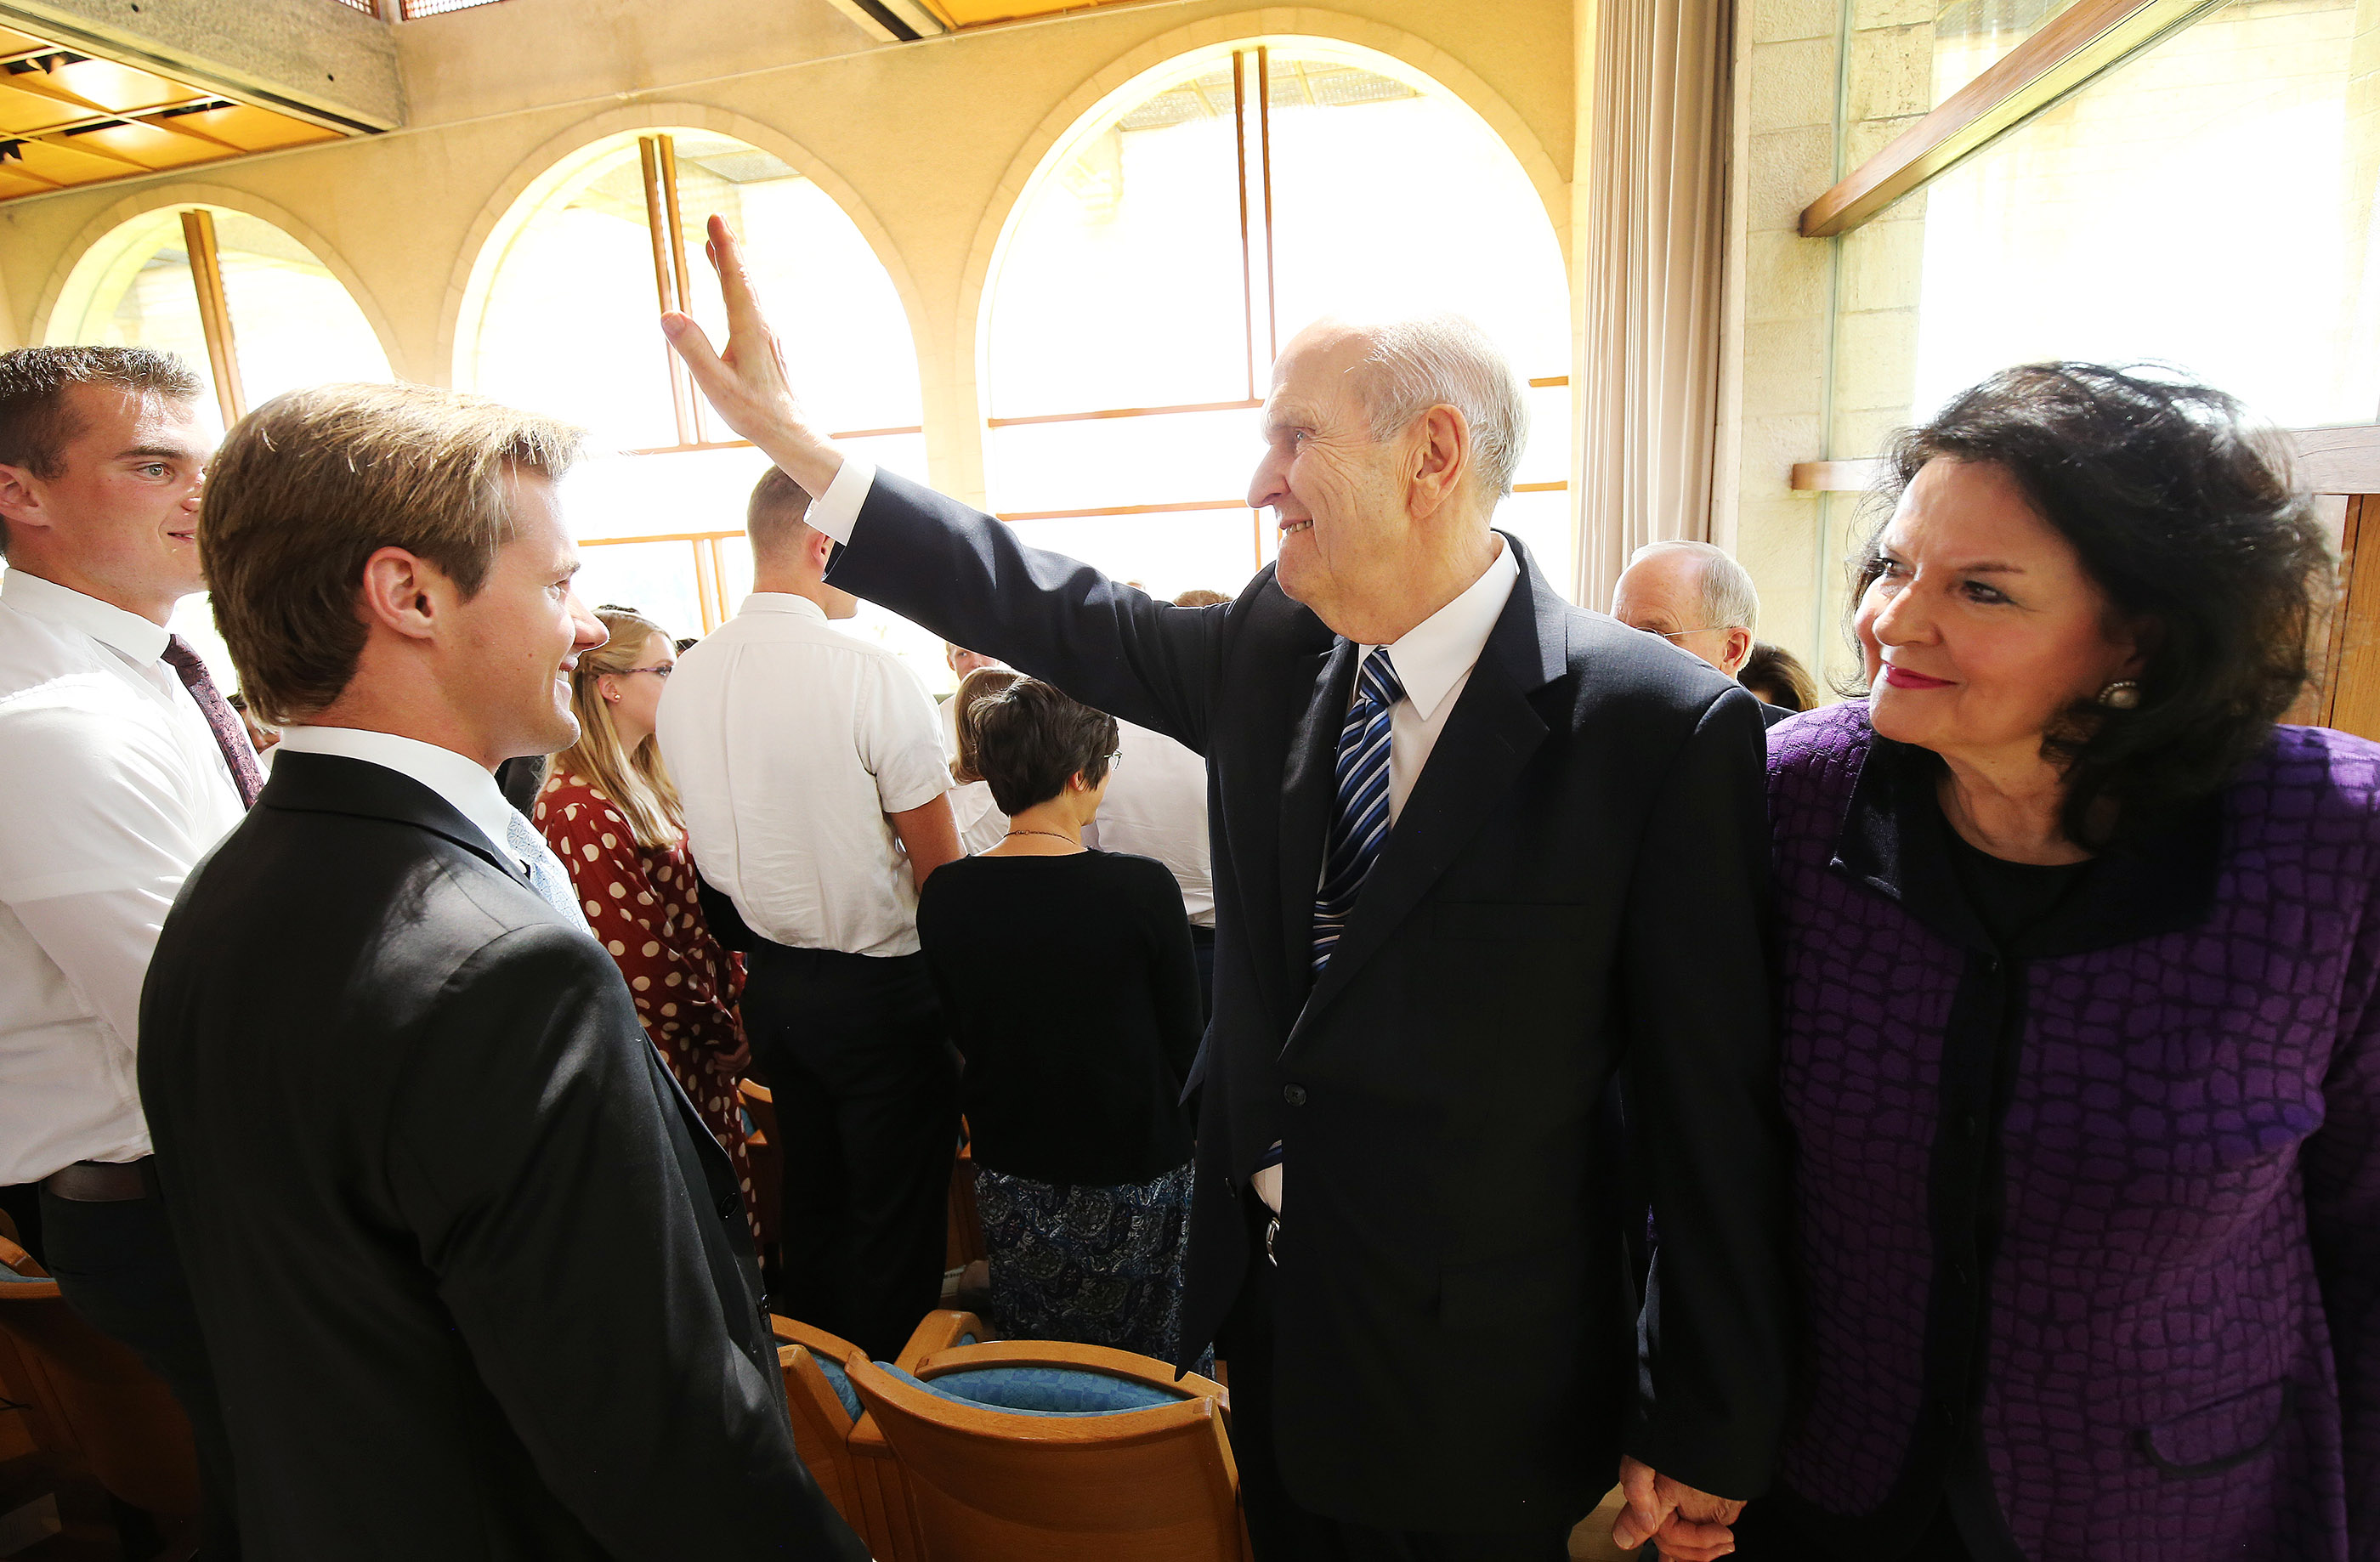 President Russell M. Nelson, president of The Church of Jesus Christ of Latter-day Saints, and his wife, Sister Wendy Watson Nelson, wave to attendees after the Jerusalem District Conference at the BYU Jerusalem Center in Jerusalem on Saturday, April 14, 2018.